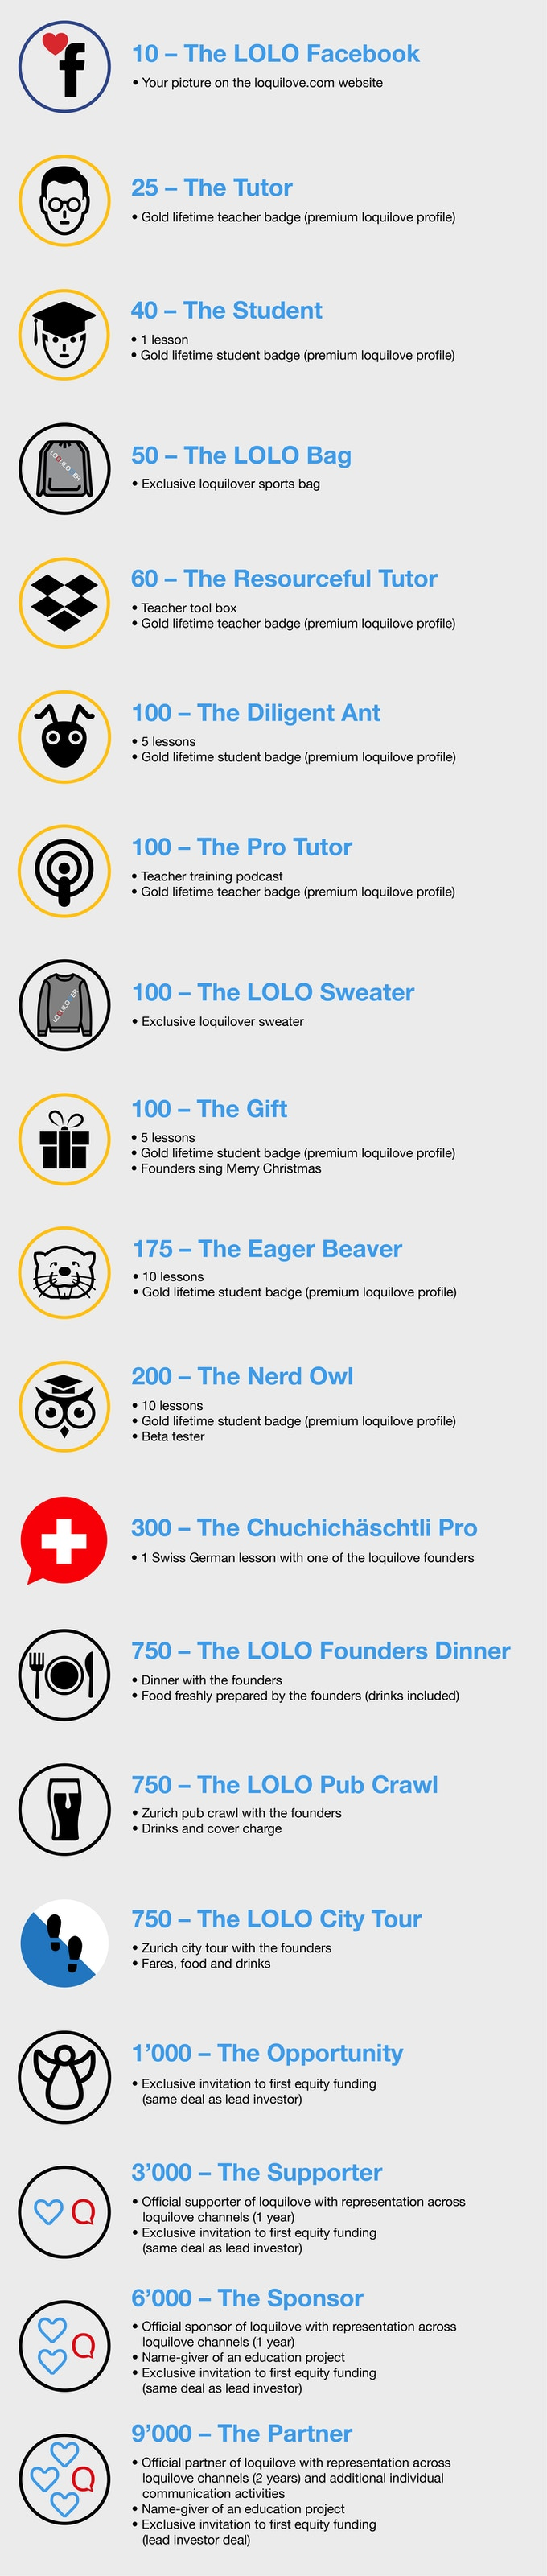 Back us and help us make a difference! For detailed info on the rewards, please check the perks on the right. The illustrated rewards are in CHF.